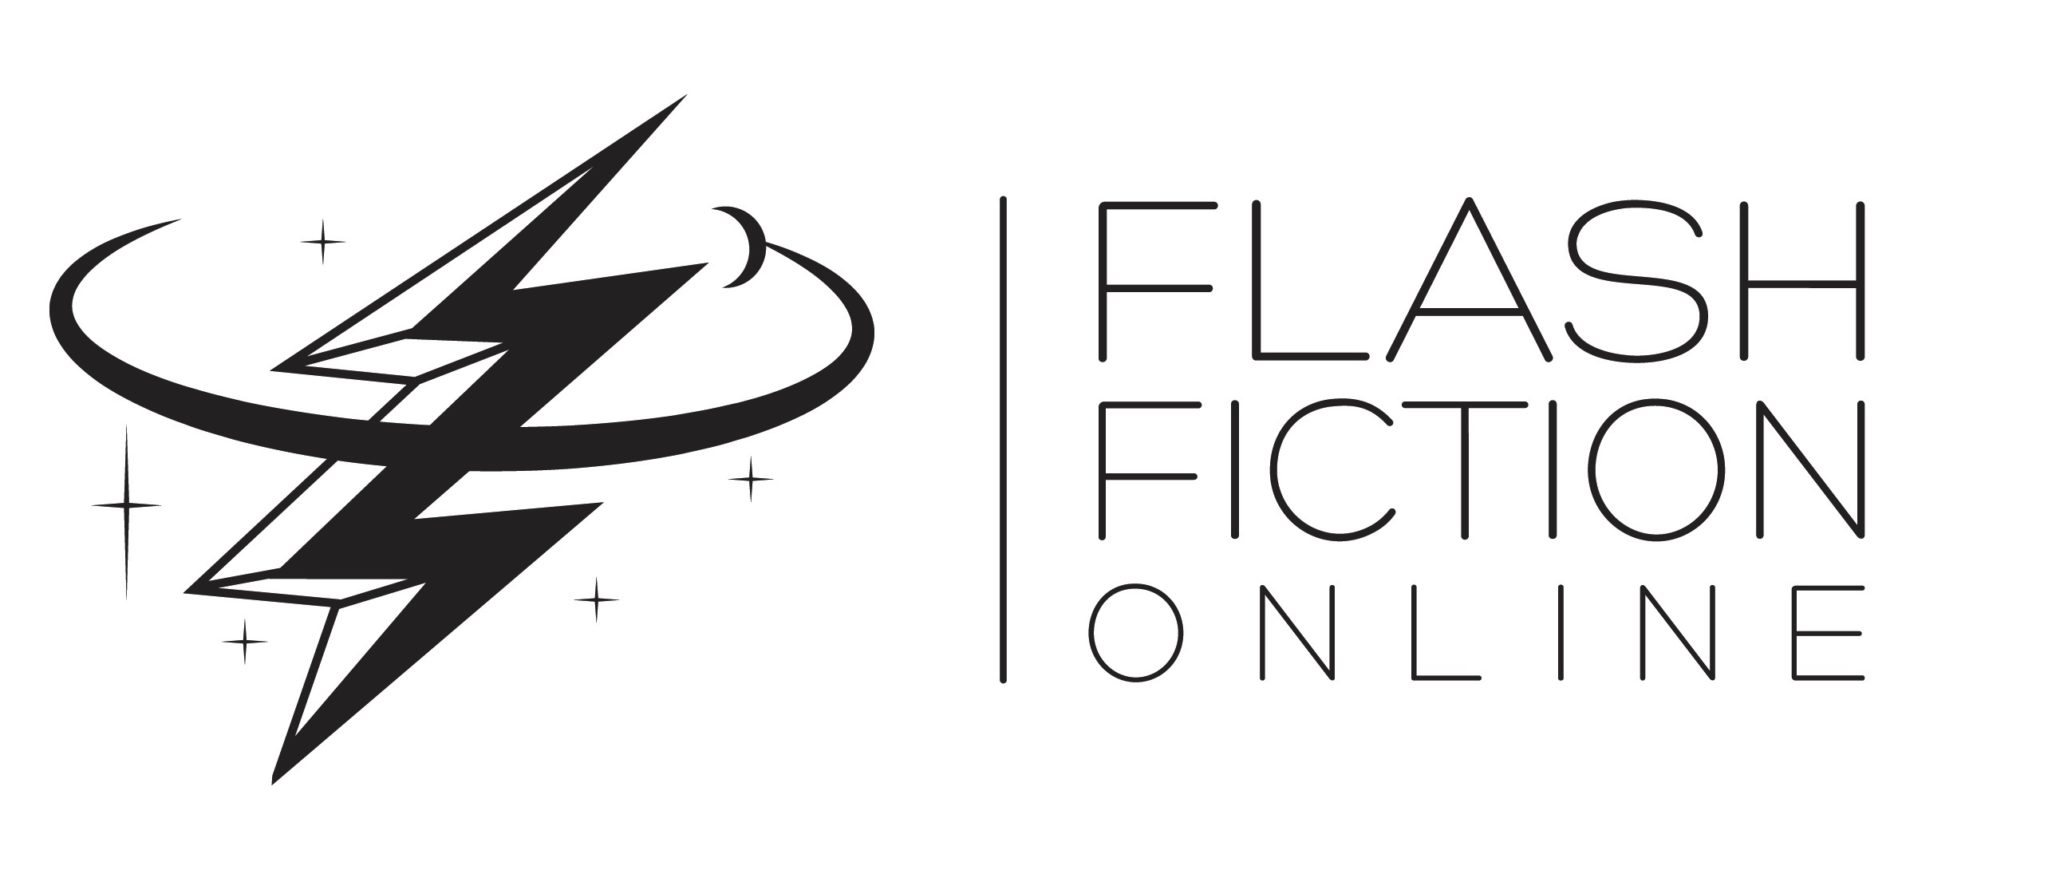 How to Write Flash Ficton: 5 Easy Tips to Not Burn Your Bridges